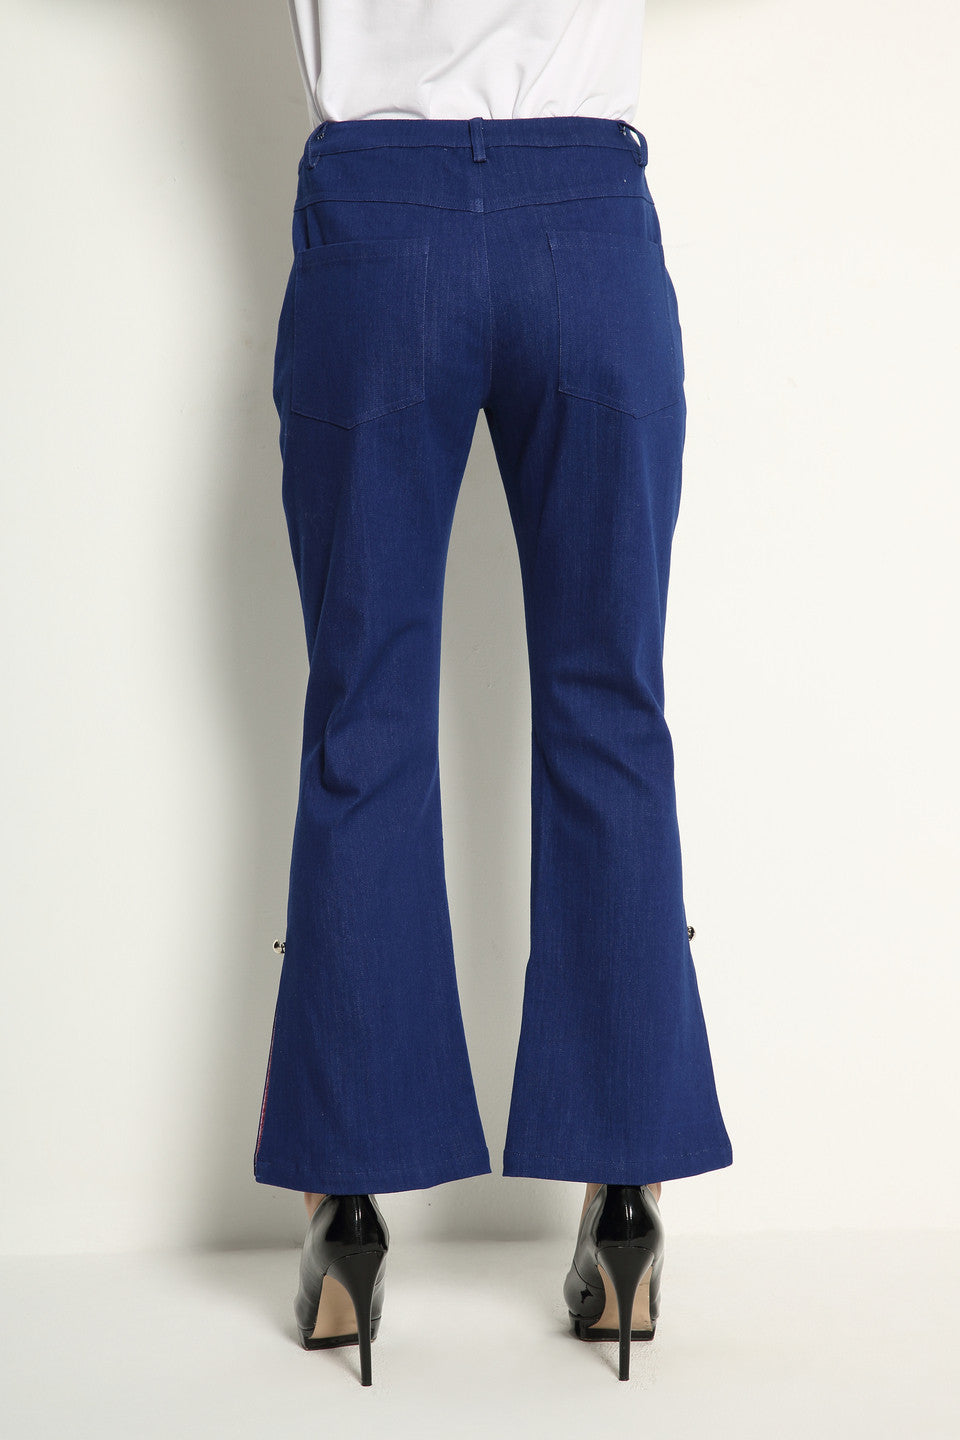 Slit Flare Jeans With Color Lining - GlanceZ   - 6